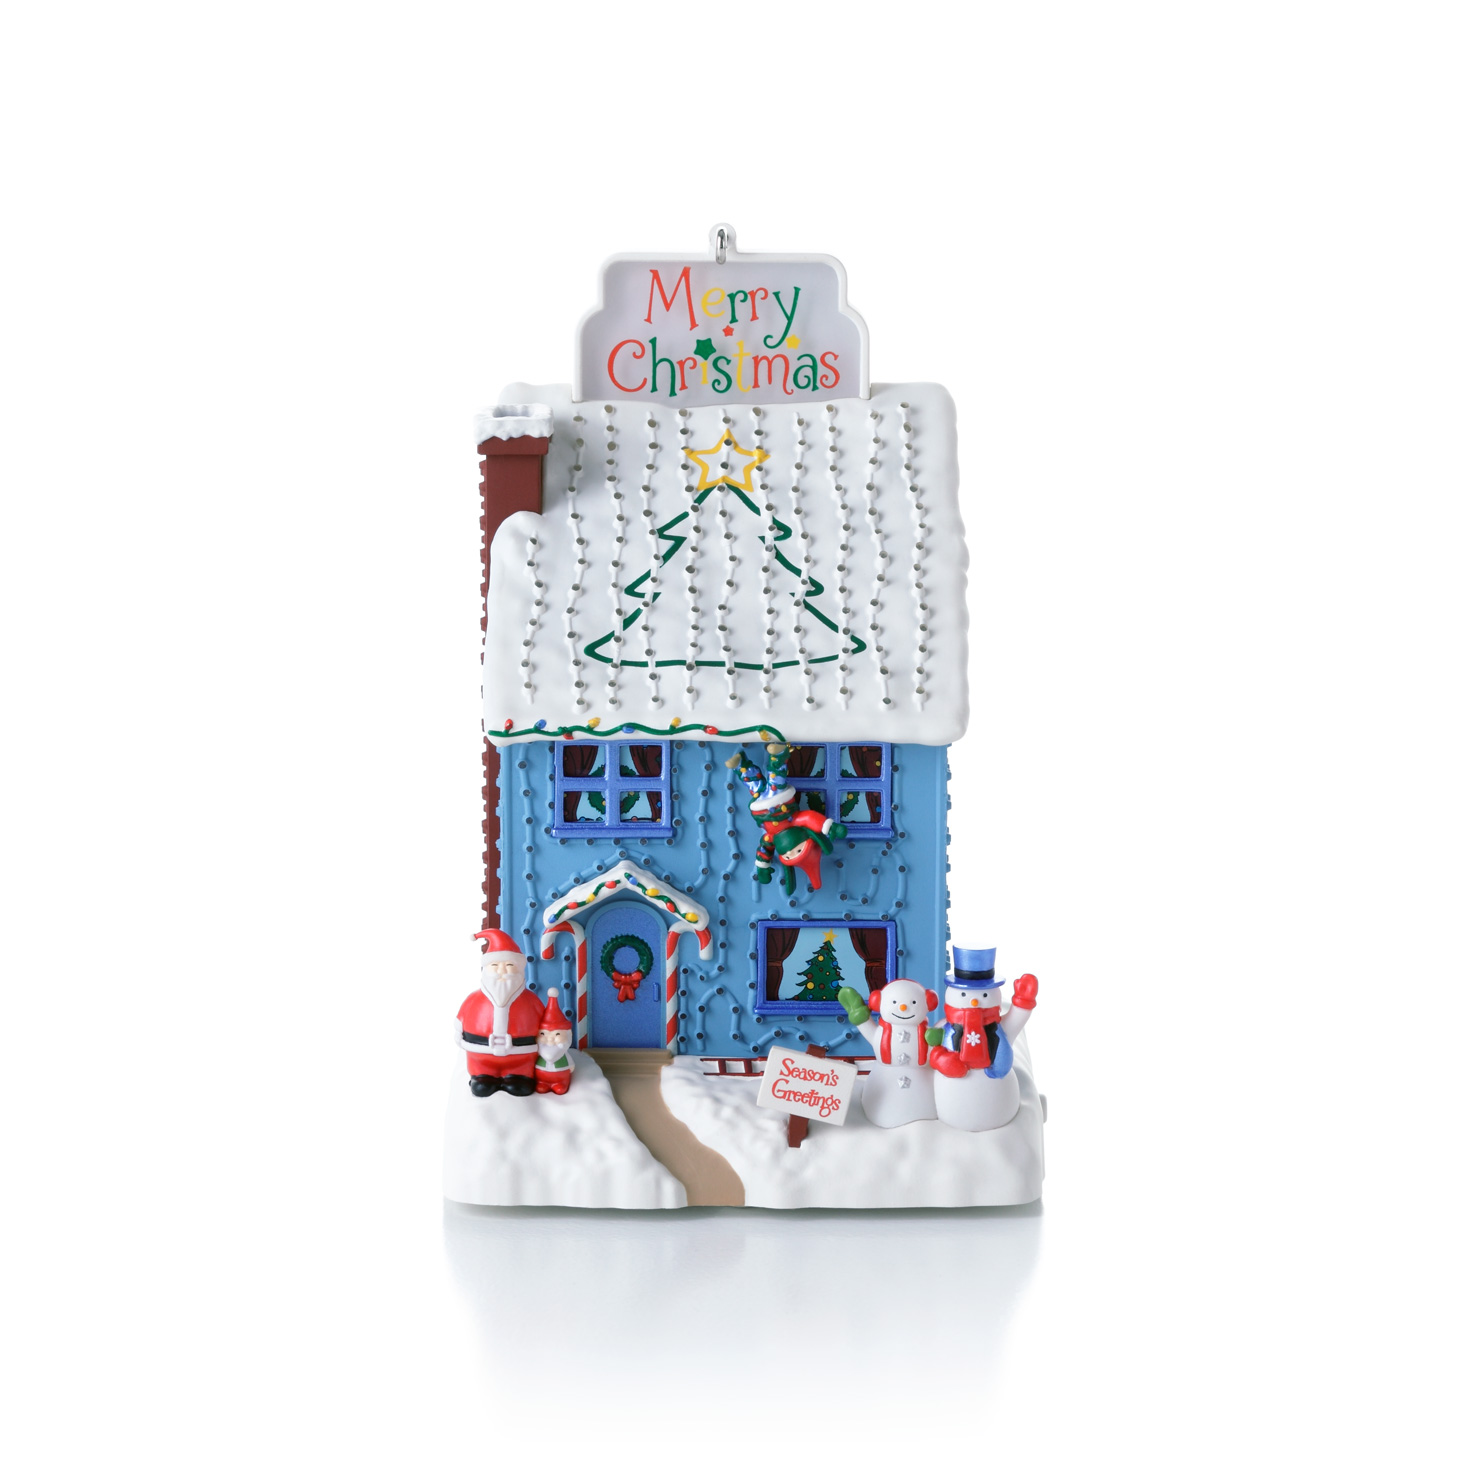 Deck the house 2012 hallmark ornament